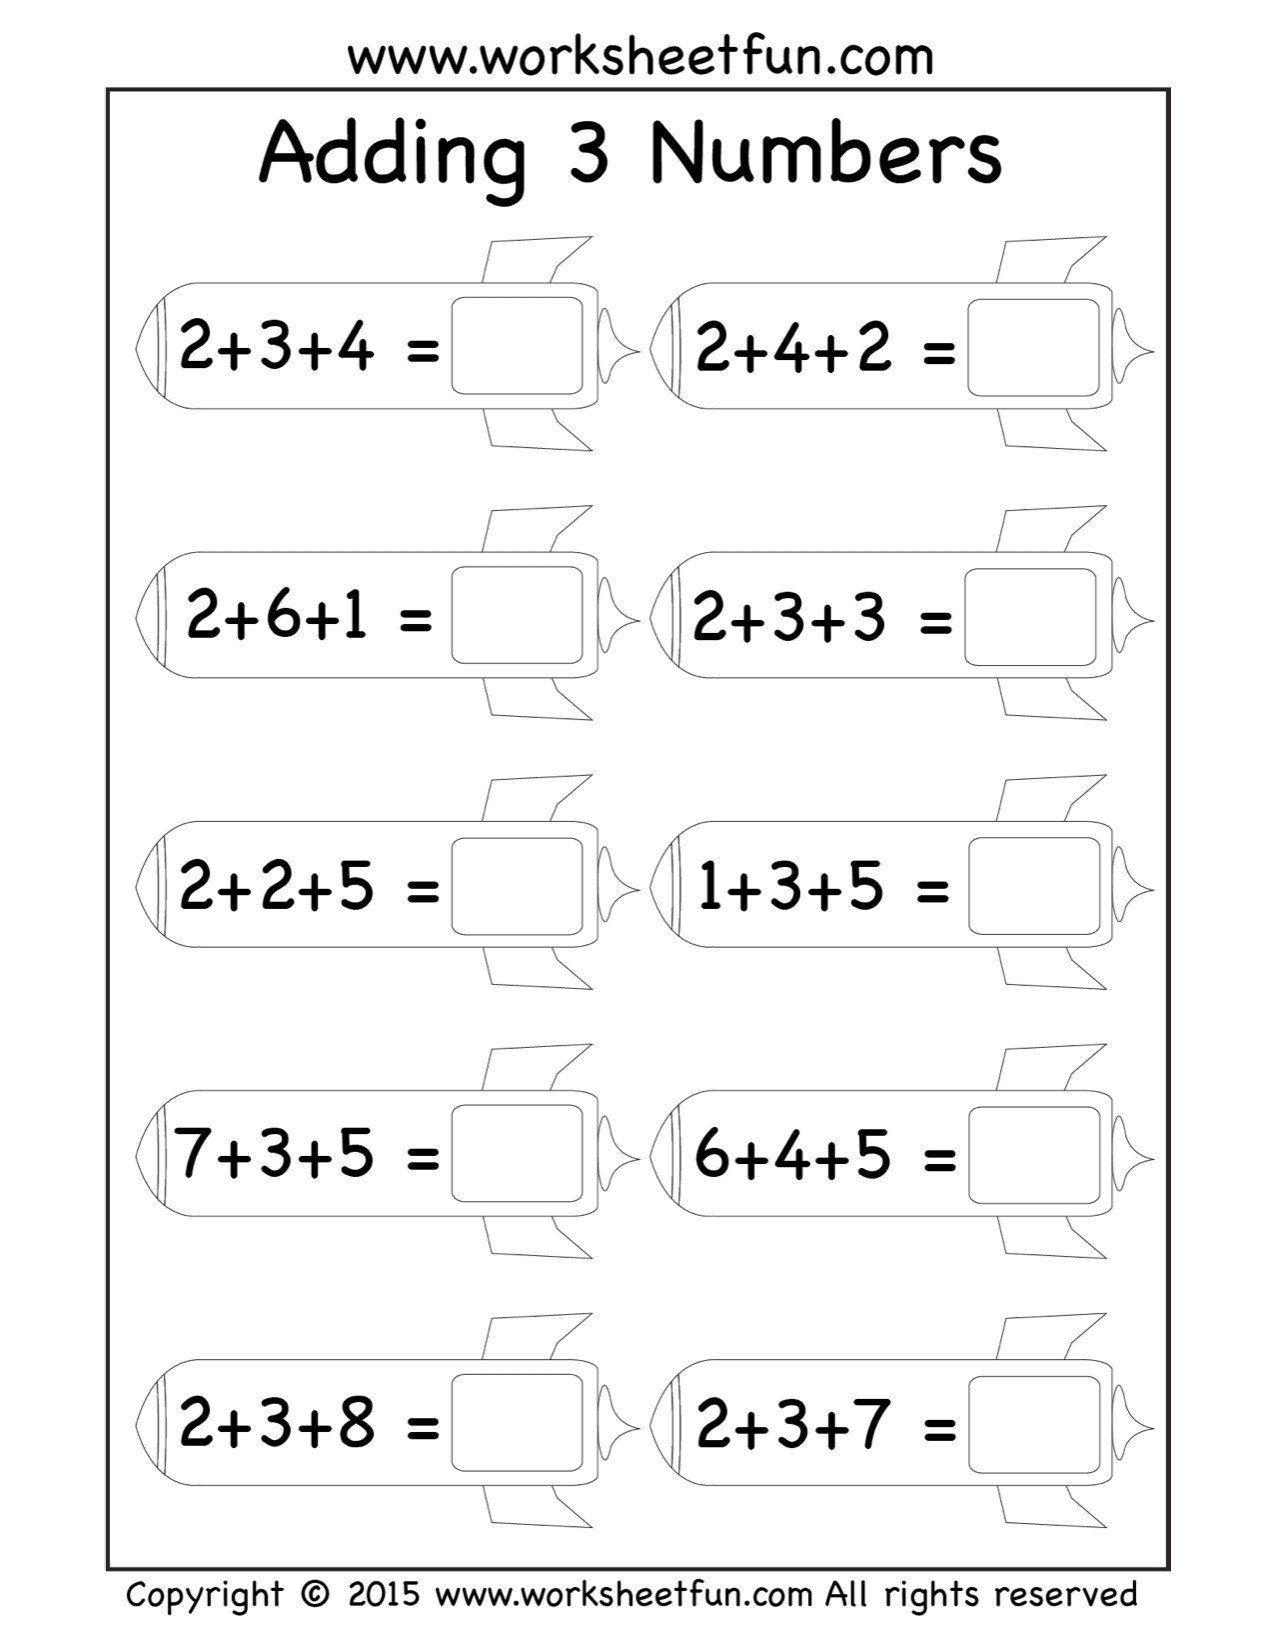 Adding 3 Numbers Worksheet 5 Free Math Worksheets First